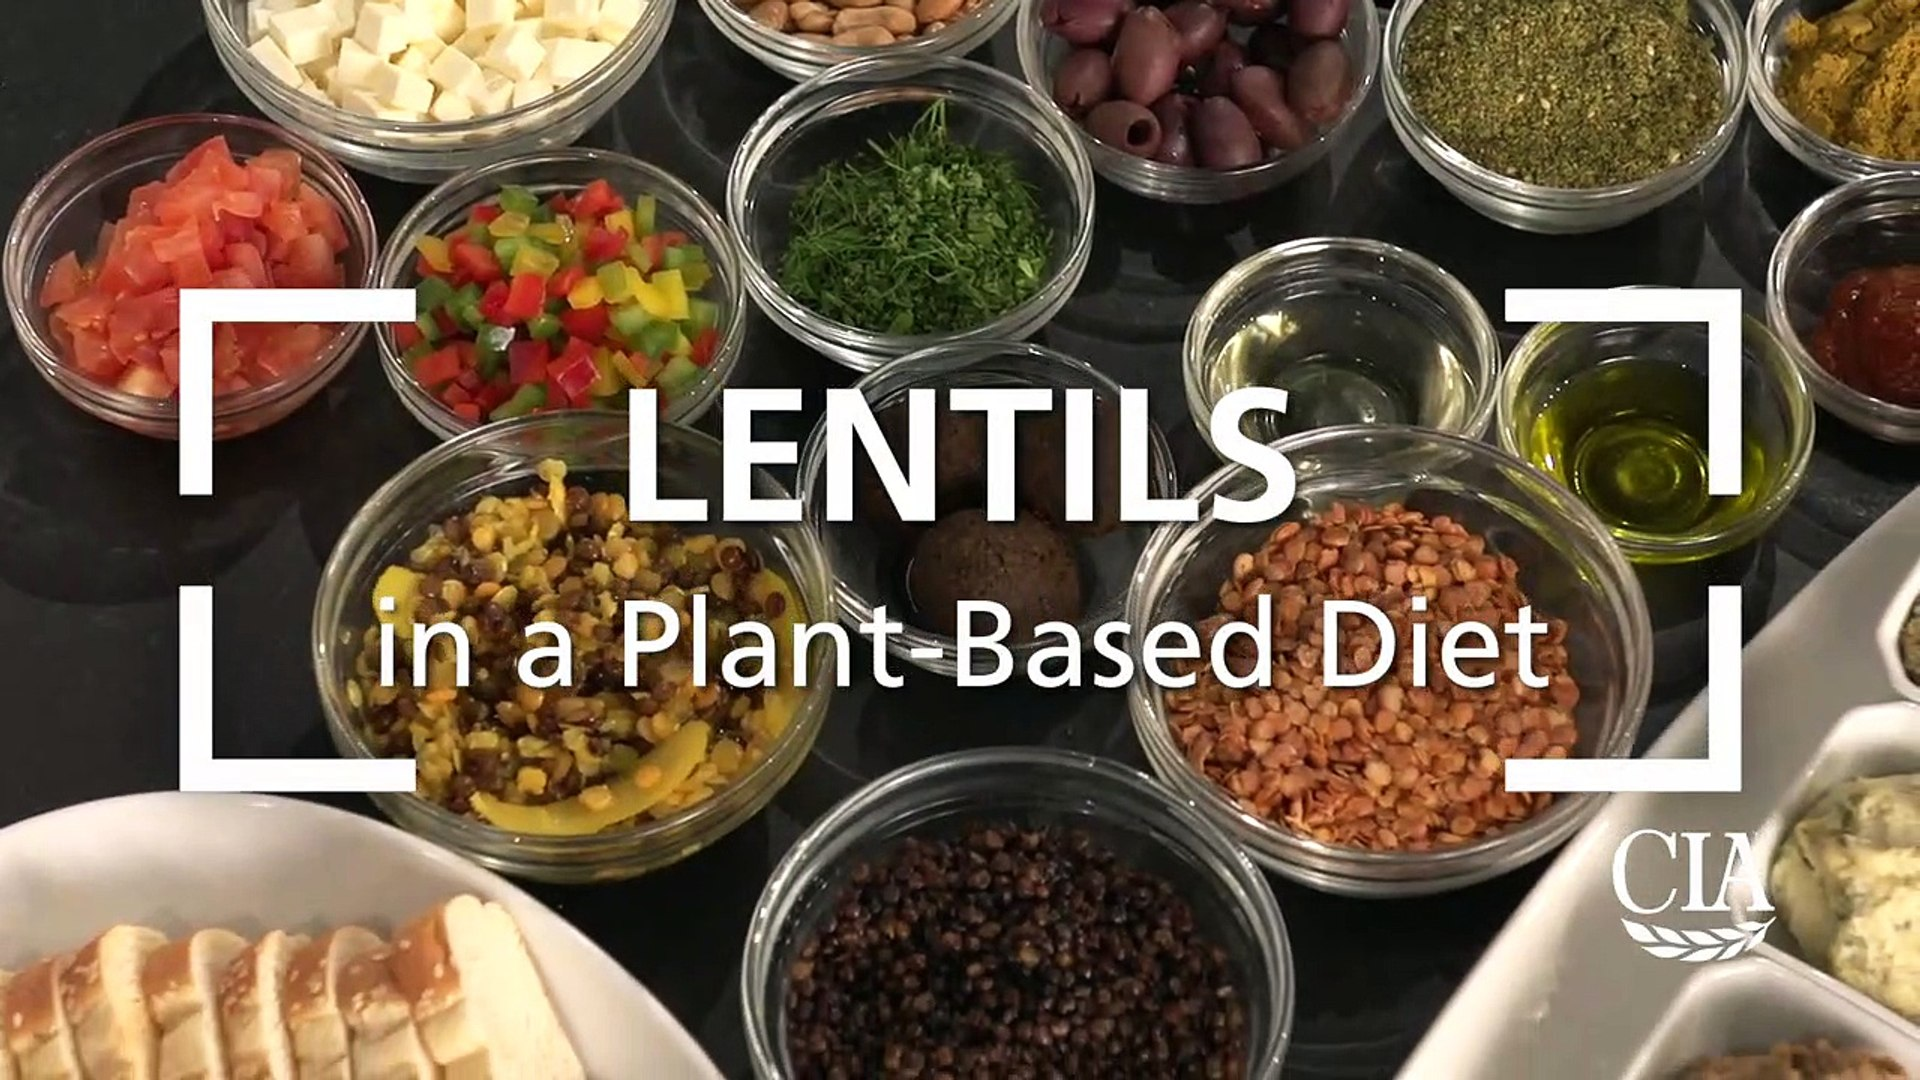 Lentils in a Plant-Based Diet - Lentil and Beet Burger-nJDR